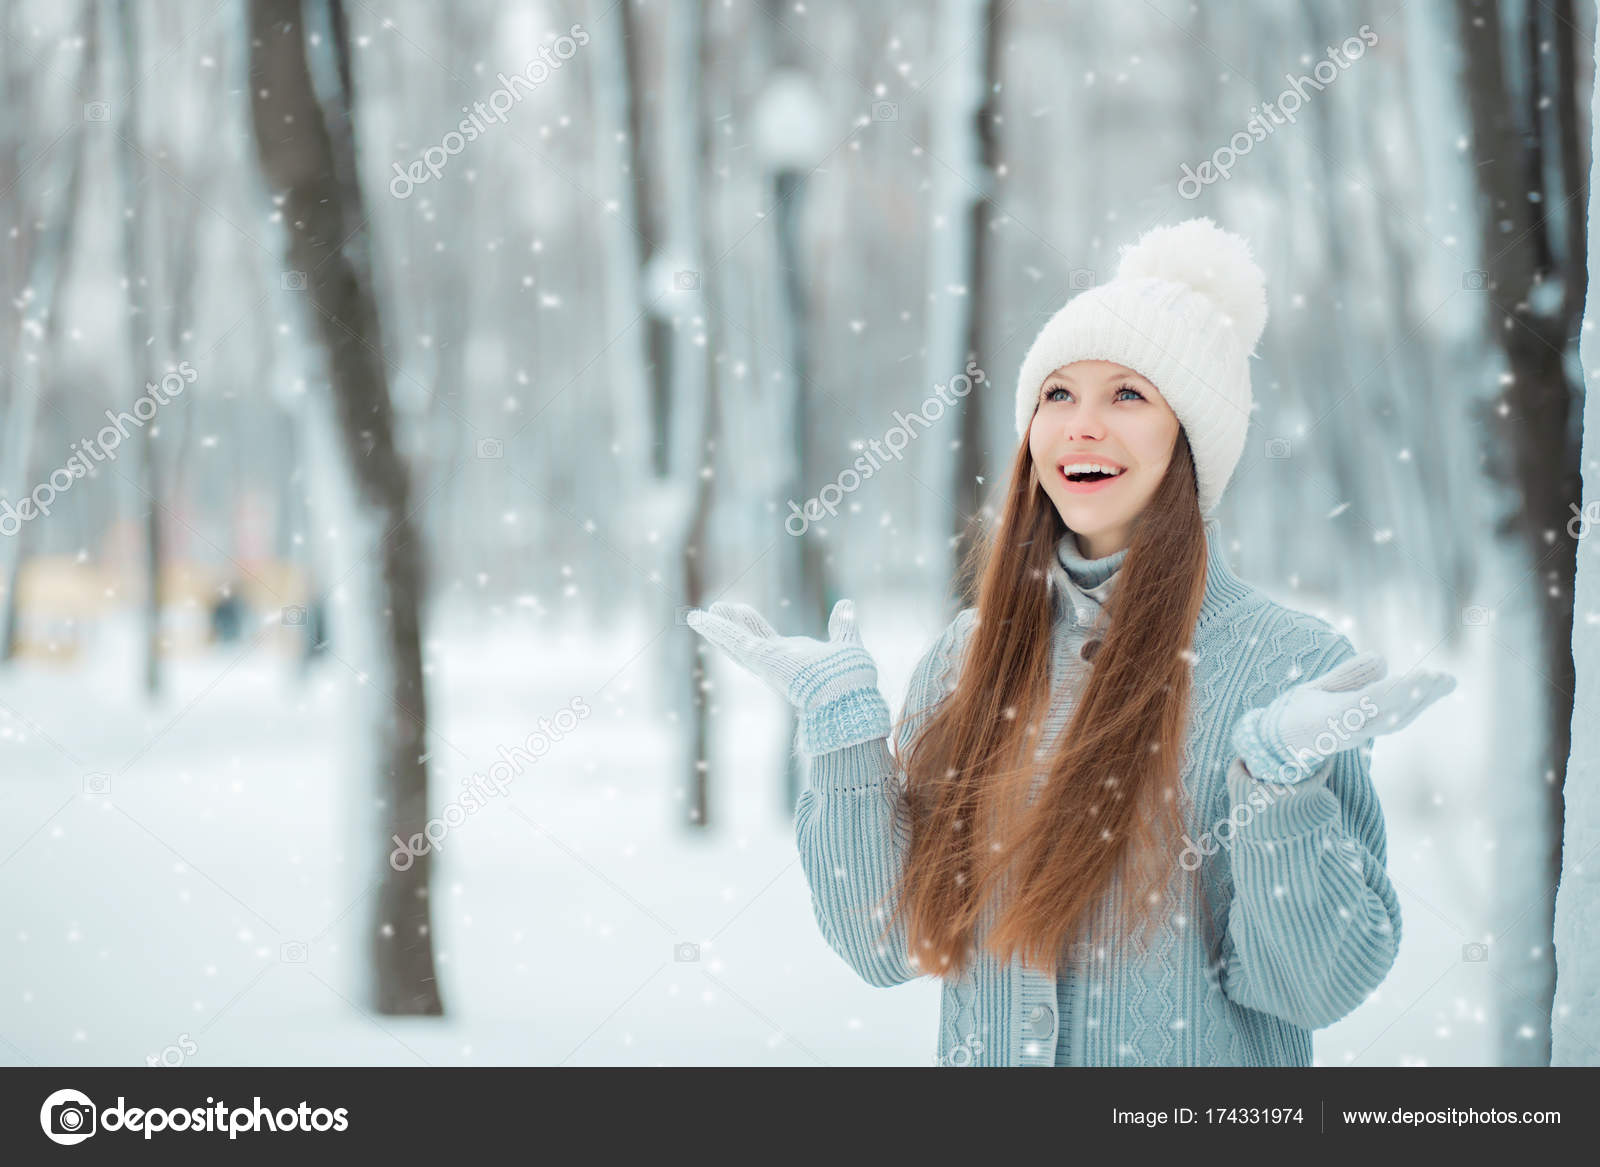 c862d63f2c1 Outdoor close-up portrait of young beautiful happy smiling girl holding snow  in hands. Dressed in winter clothes and a white hat